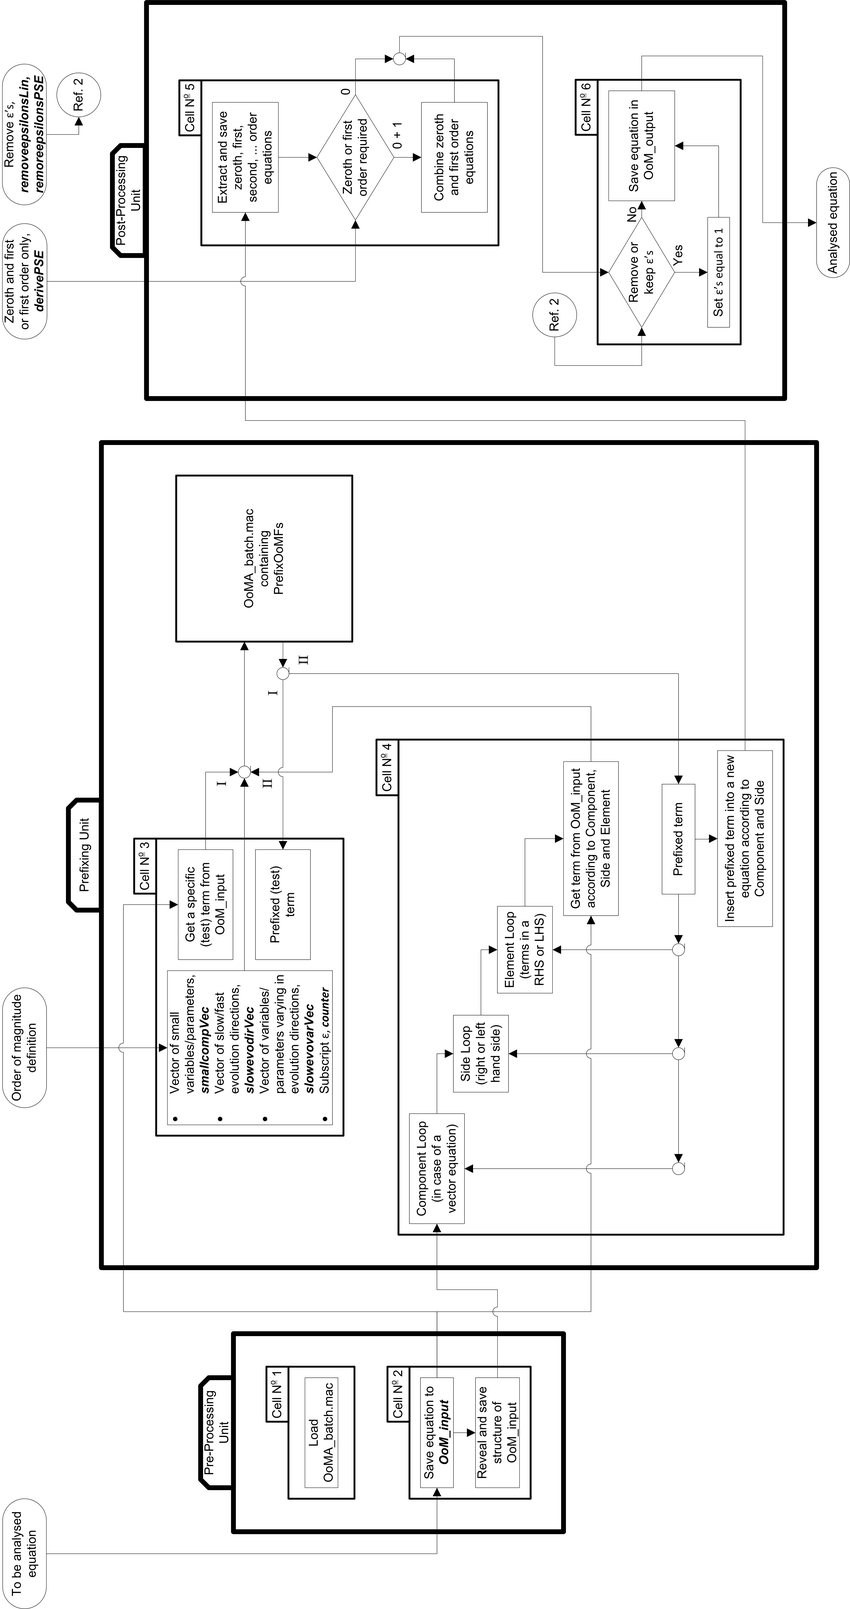 hight resolution of 2 block diagram of the structure around ooma batch mac referred to as